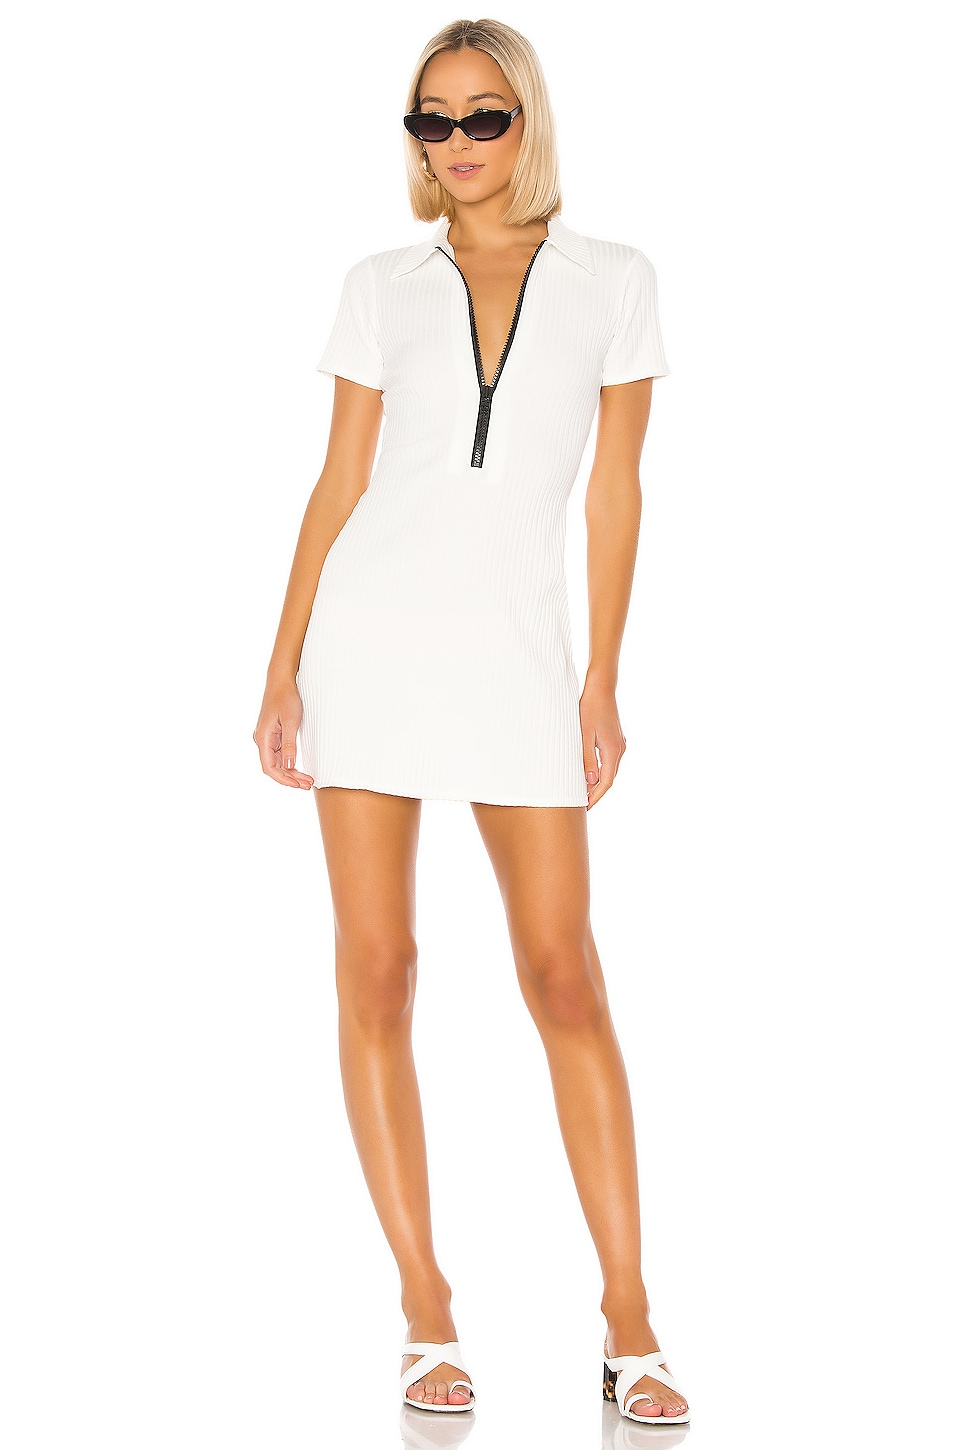 Solid & Striped Polo Zip Dress in White Rib